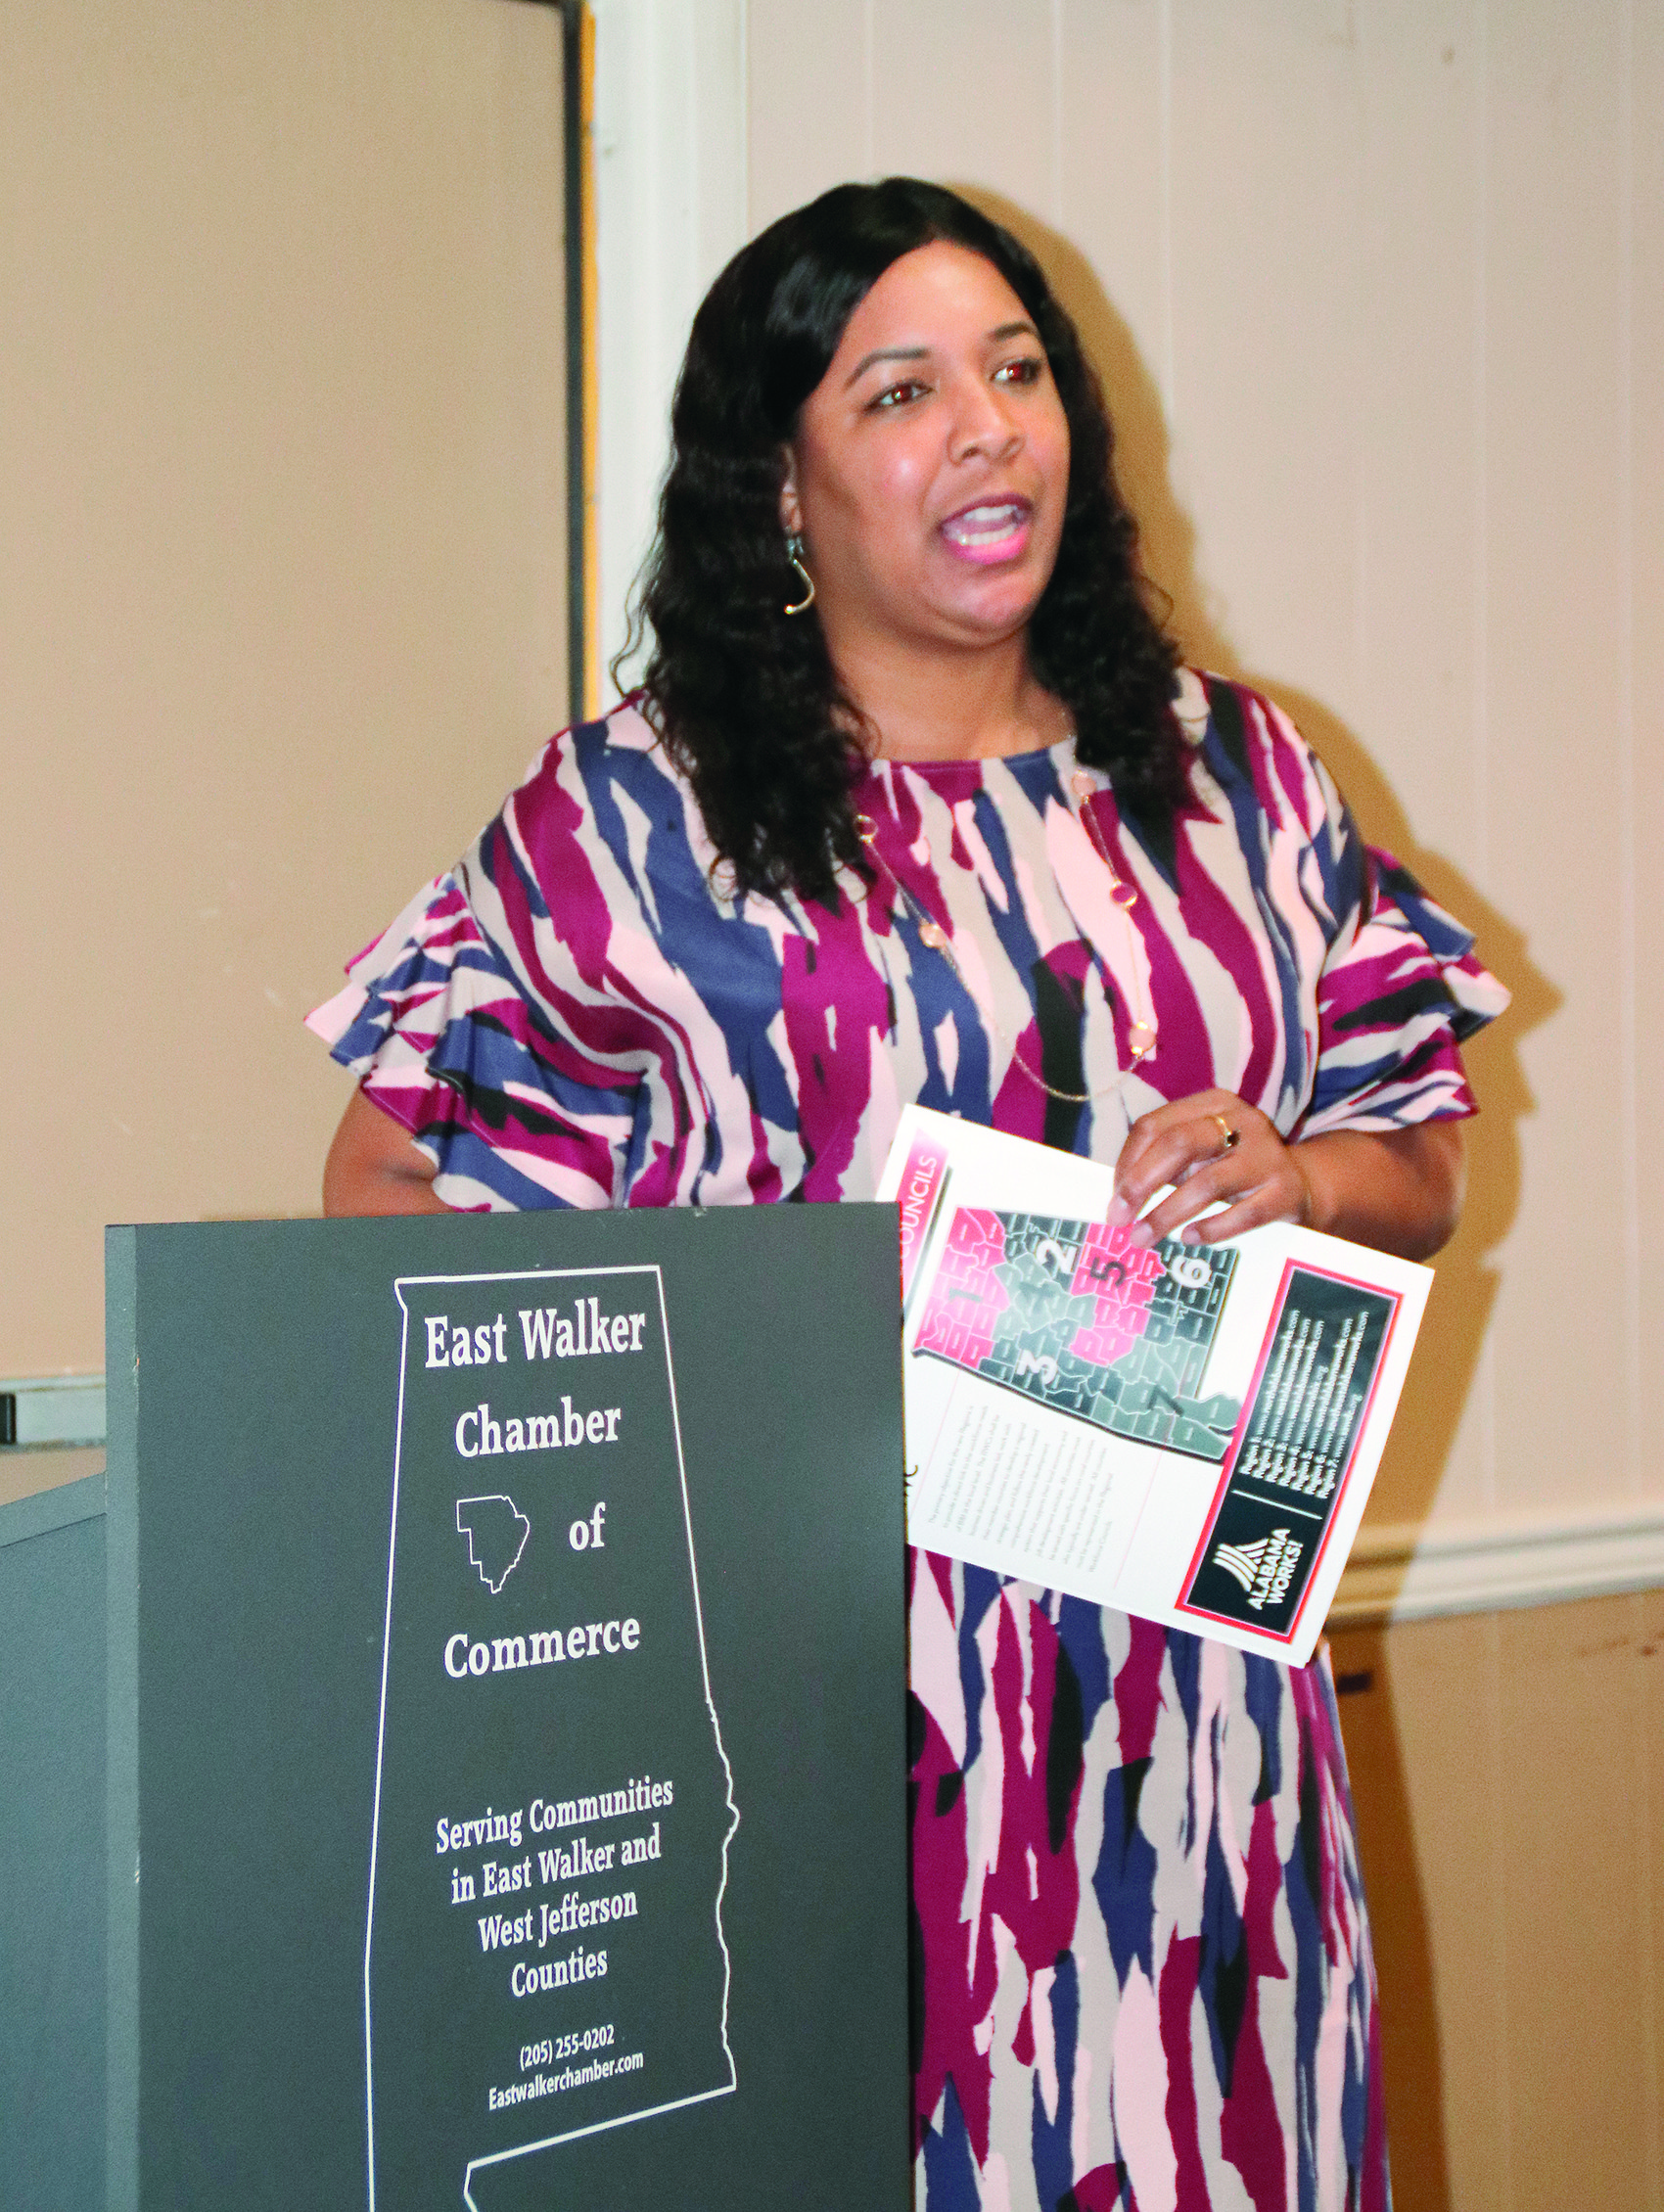 Aniqua Claggett, the executive director of the Central Six Alabama Works initiative, spoke at the East Walker Chamber of Commerce monthly meeting this week.